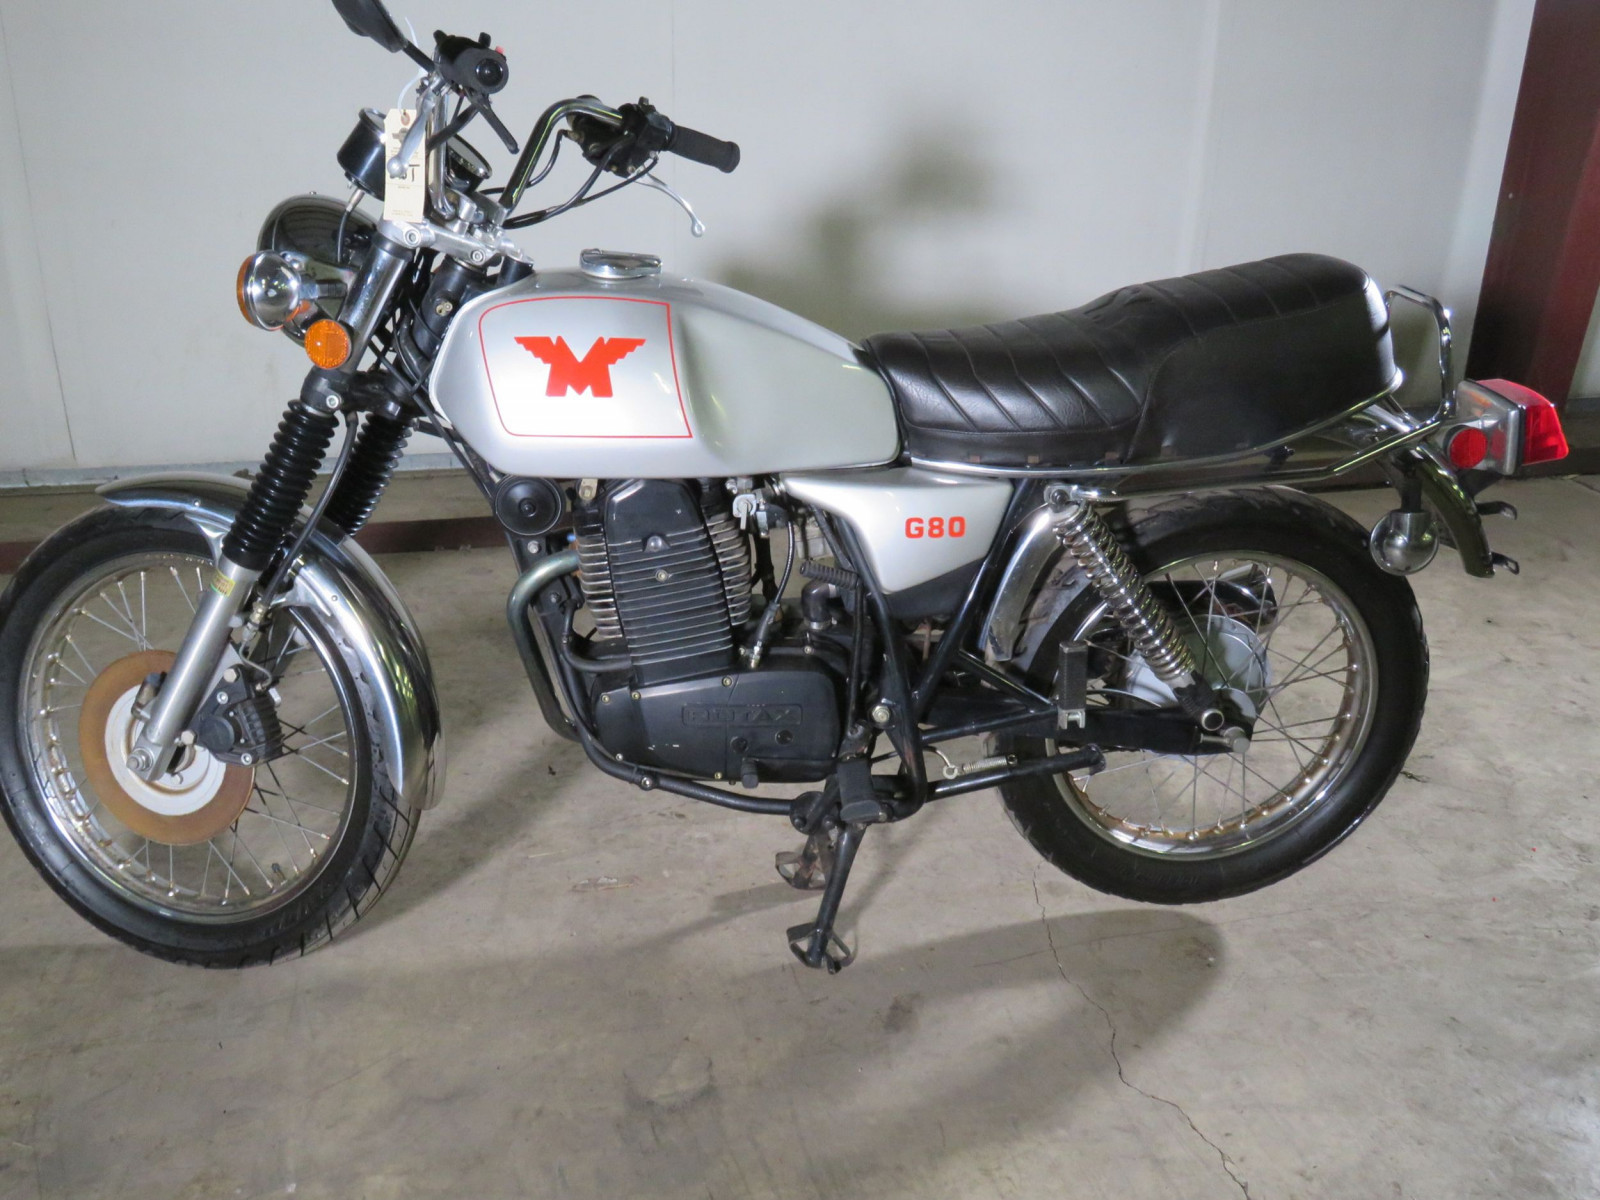 Rare 1988 Matchless G80 Rotax Power Motorcycle - Image 2